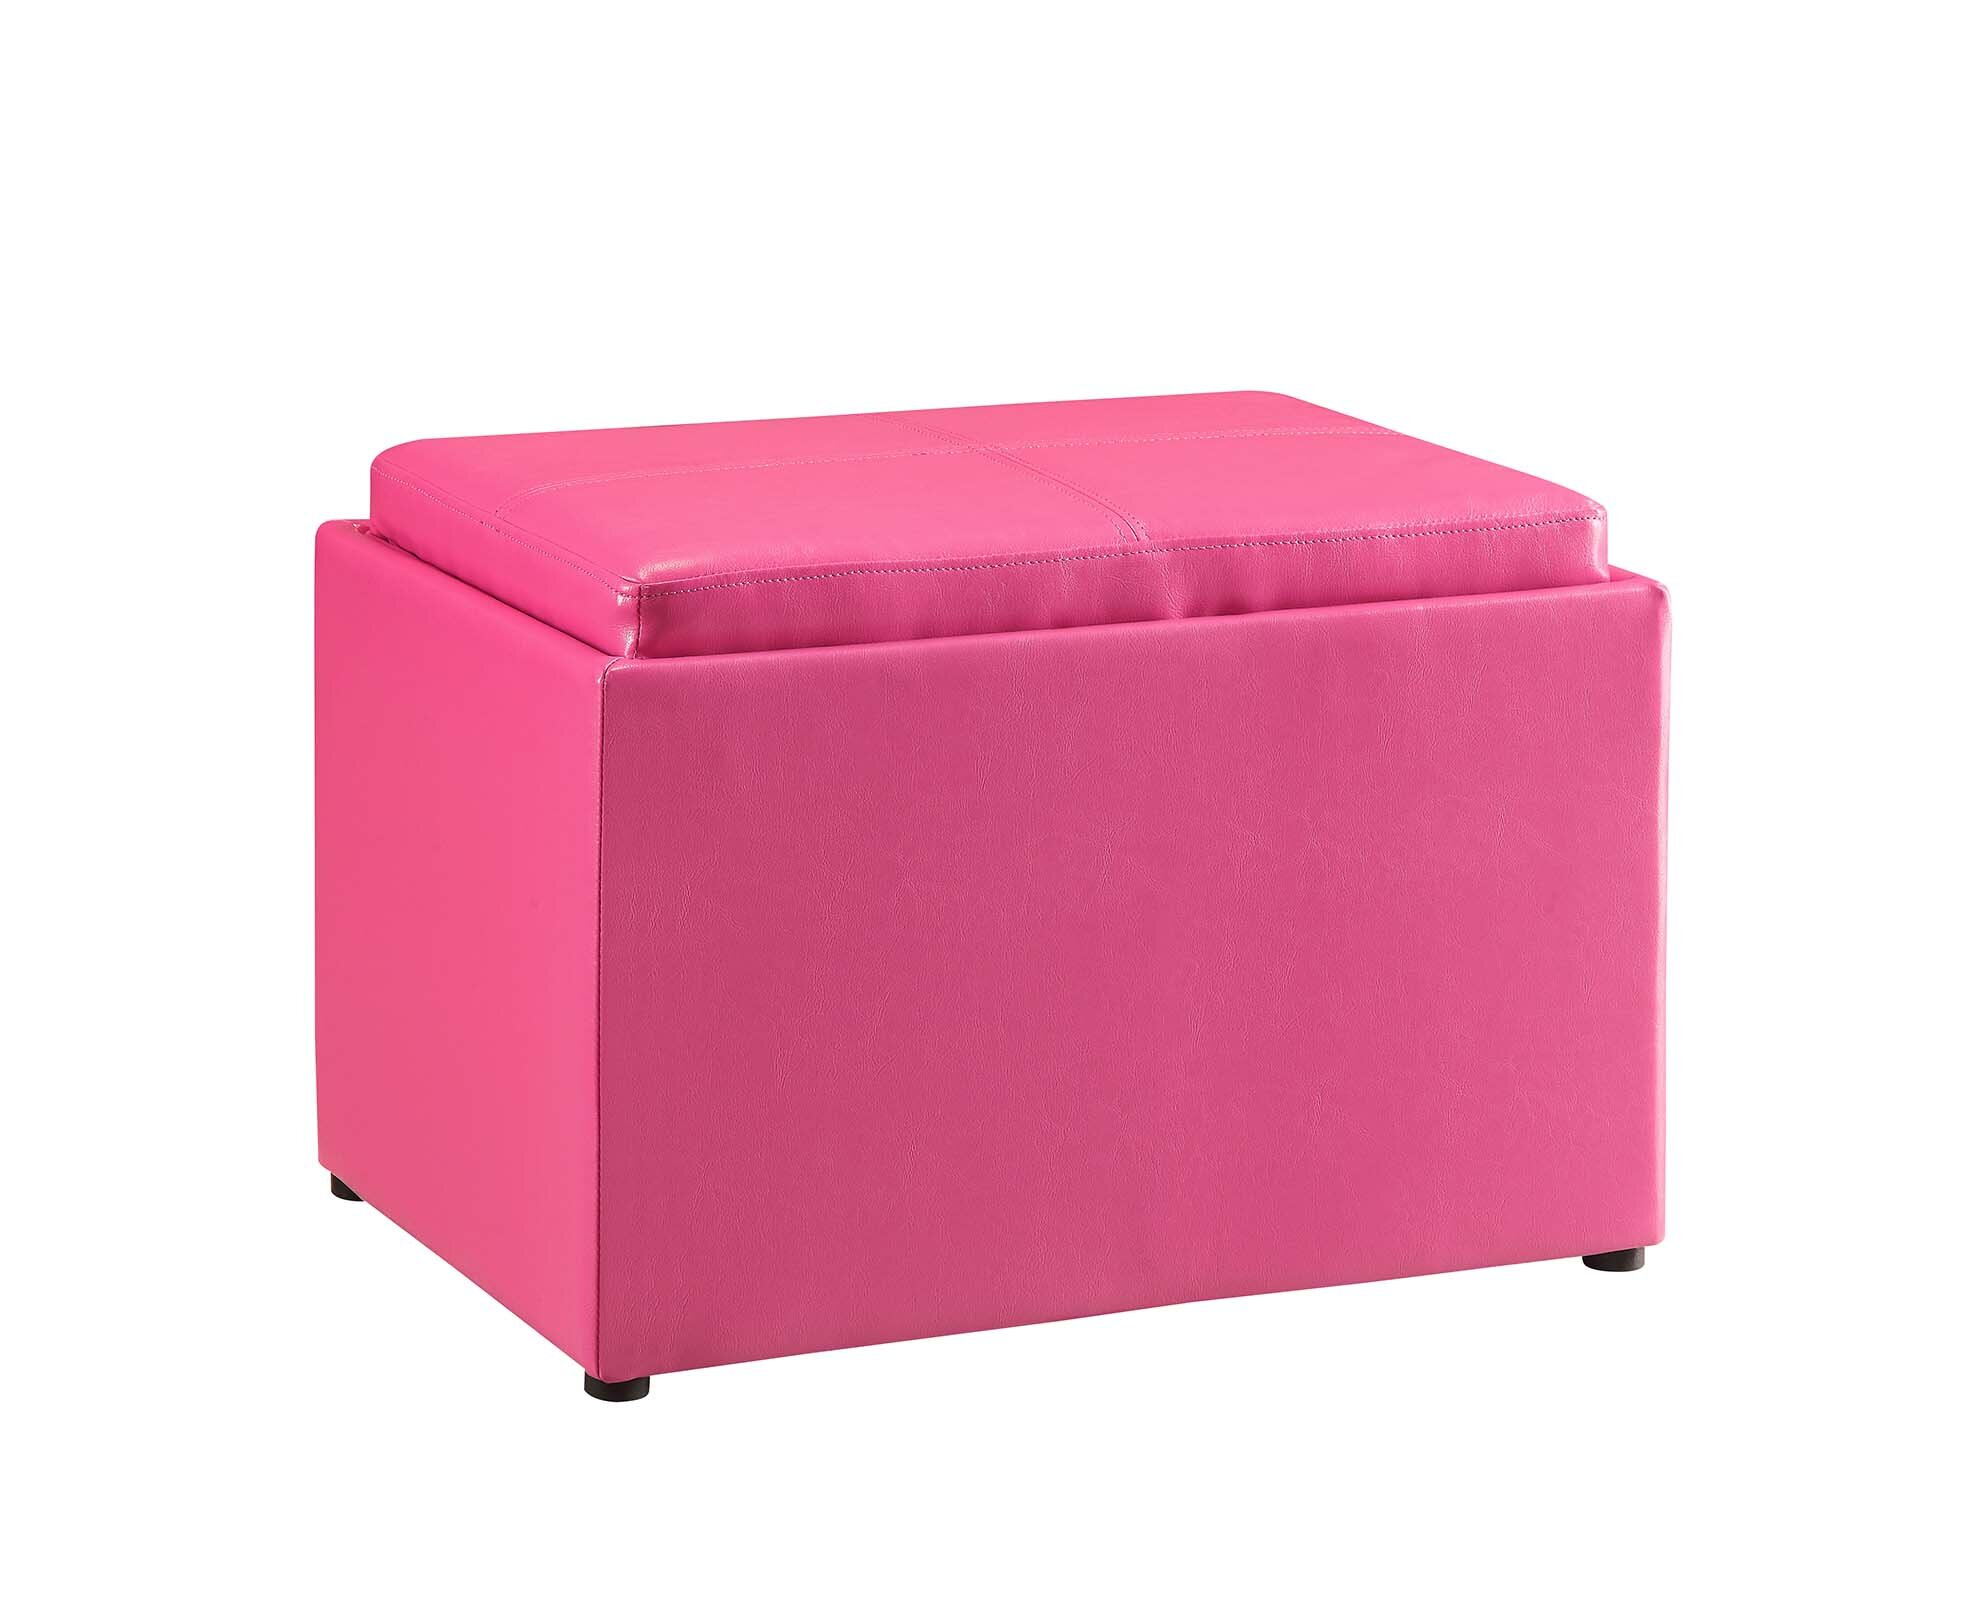 Pink Small Storage Ottomans You Ll Love In 2021 Wayfair